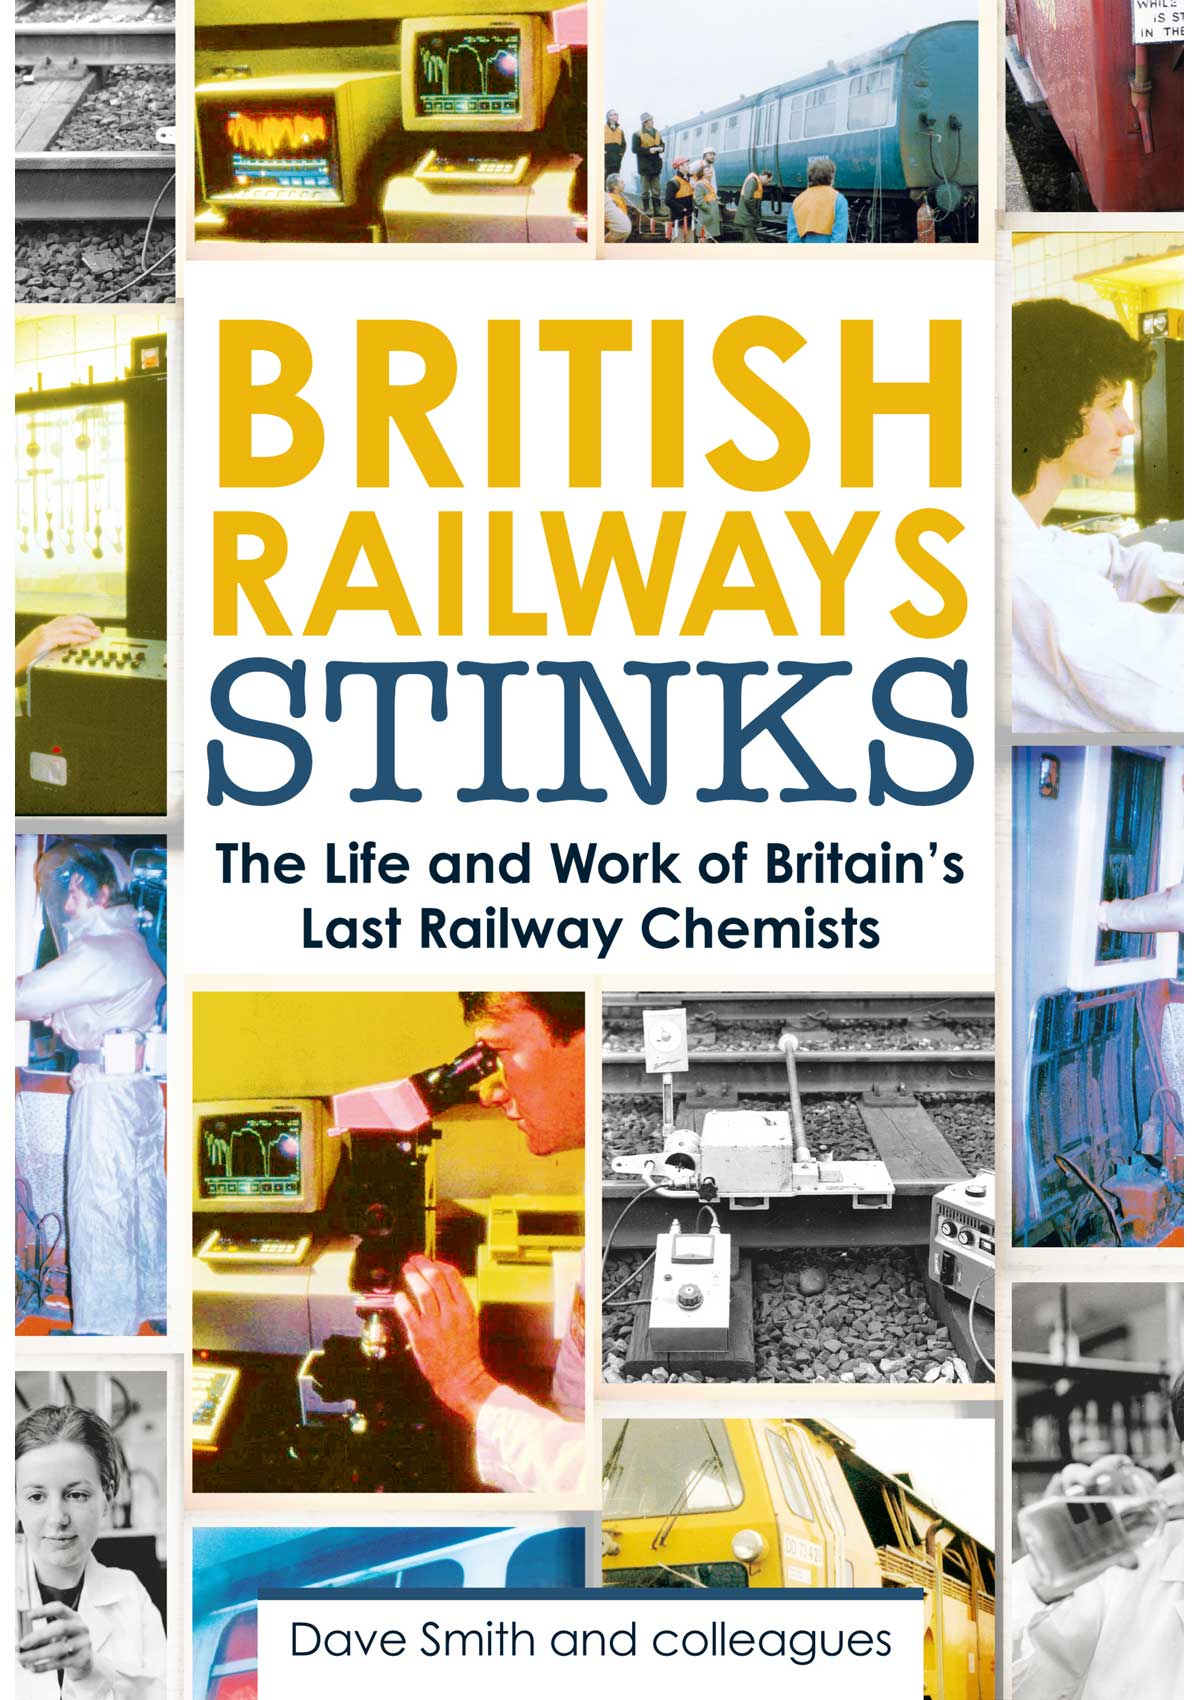 British Railways Stinks - The Last Railway Chemists